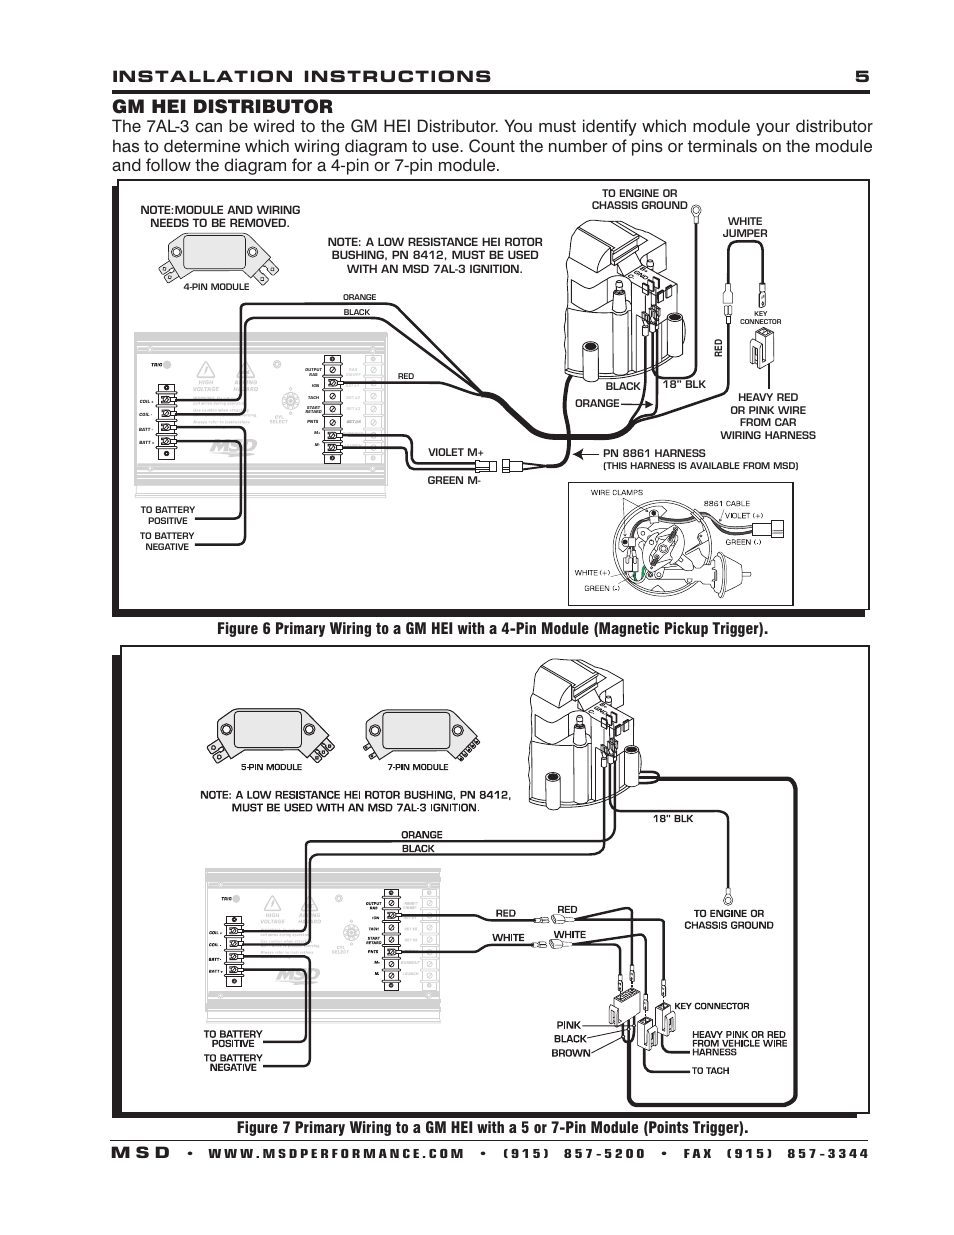 msd 7al 3 wiring basic wiring diagram \u2022 ford mustang wiring diagram msd 7al 3 7230 wiring diagram enthusiast wiring diagrams u2022 rh rasalibre co msd 7al3 wiring